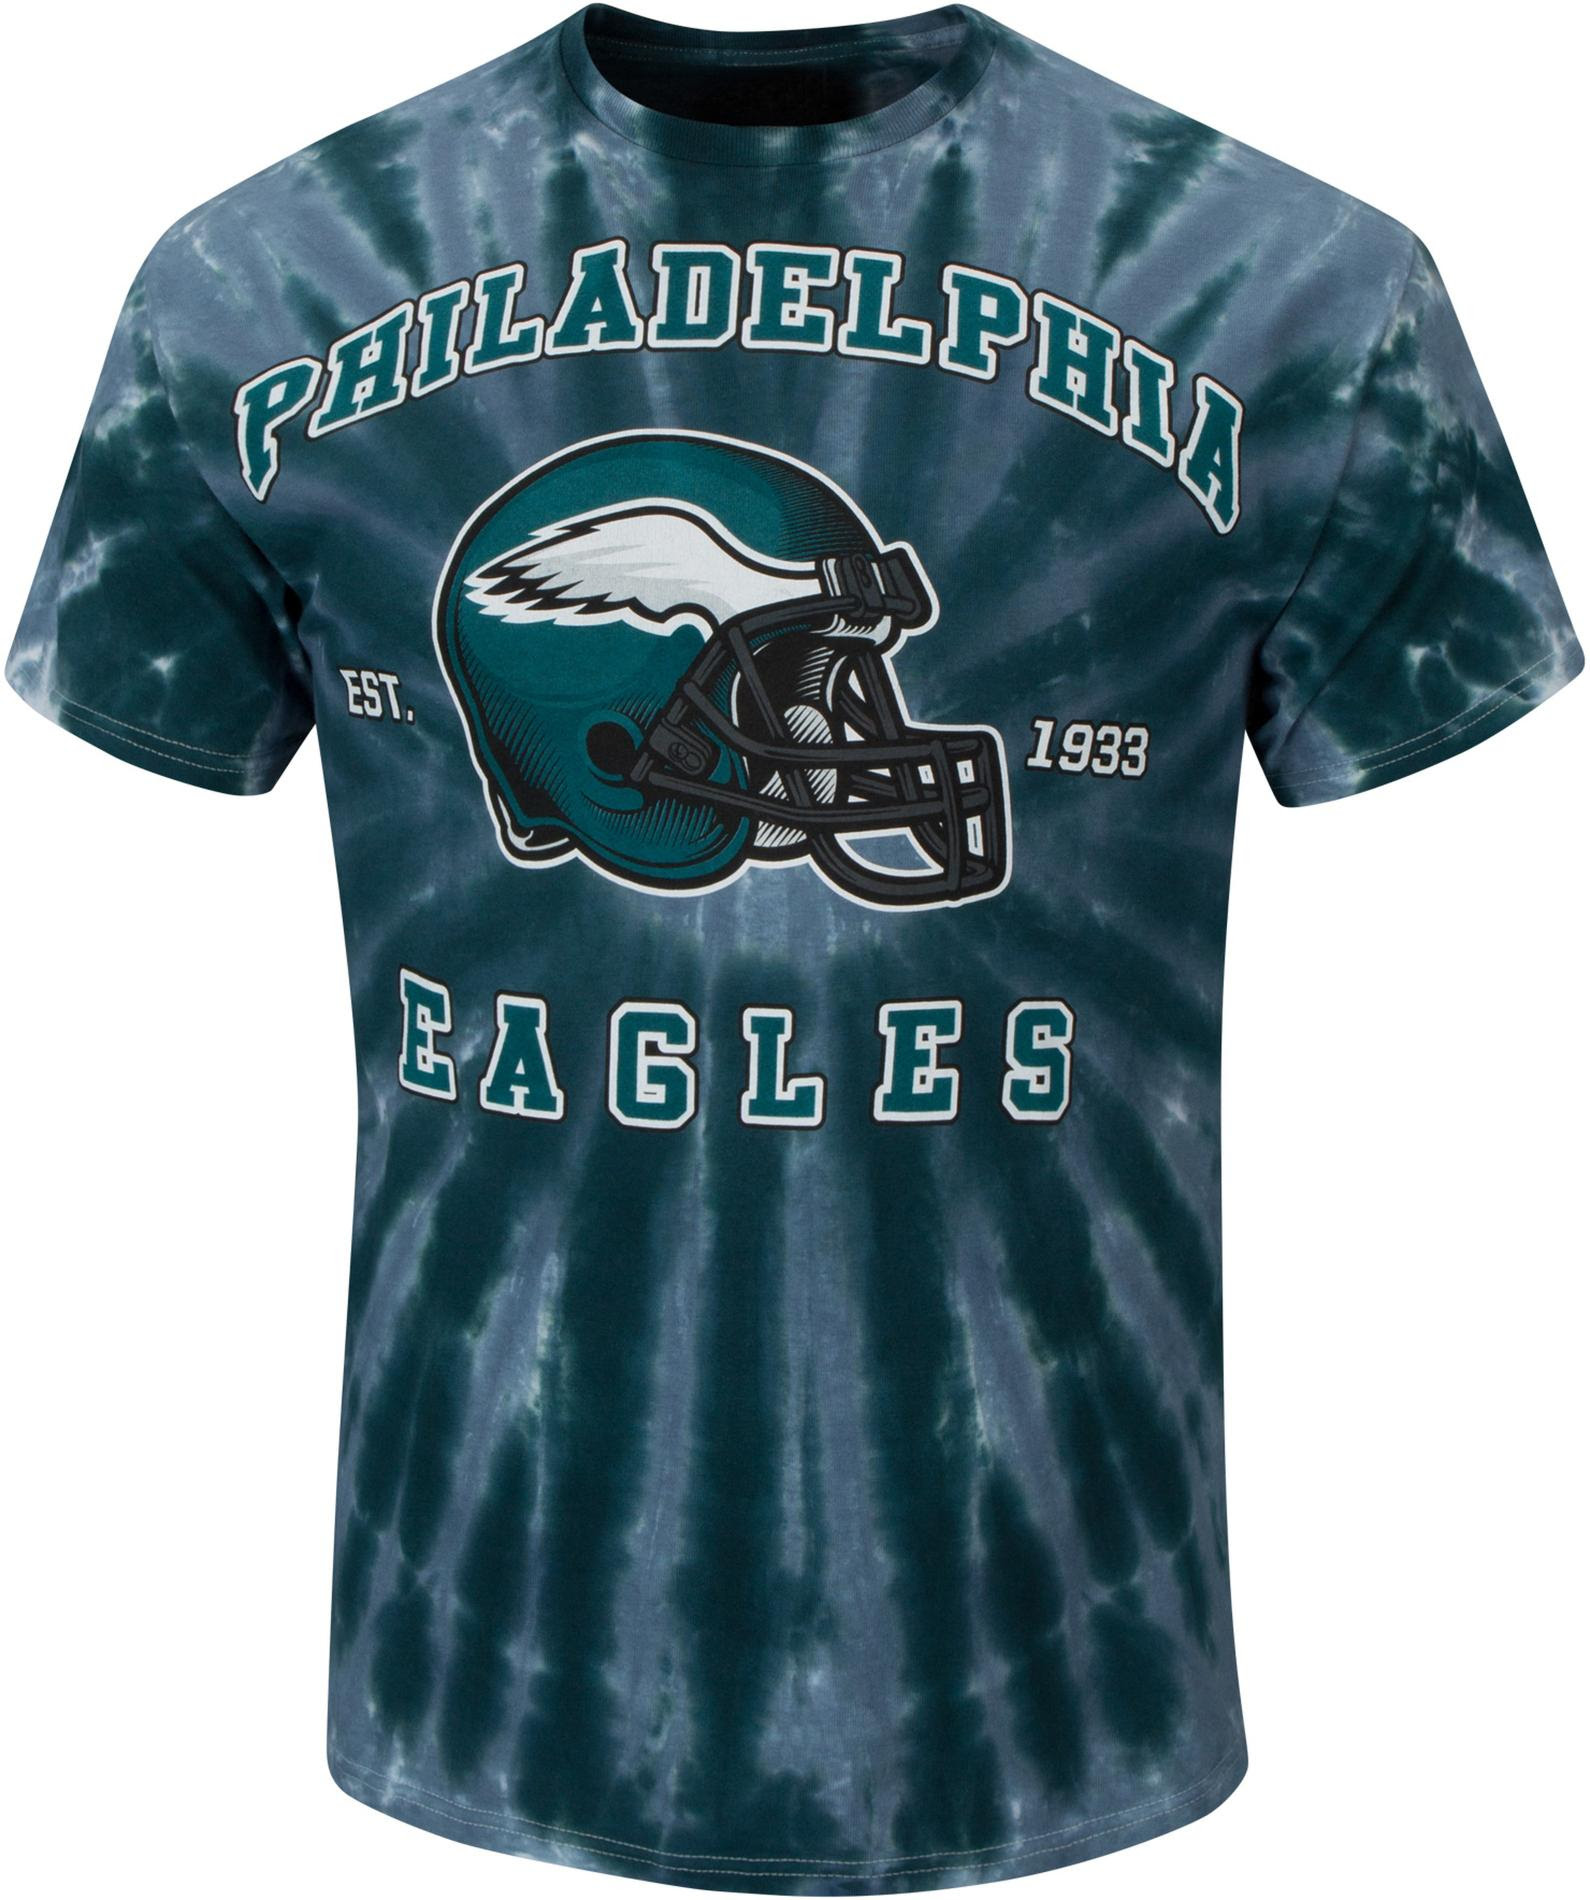 NFL Mens Graphic TShirt  Philadelphia Eagles  Shop Your Way: Online Shopping  Earn Points